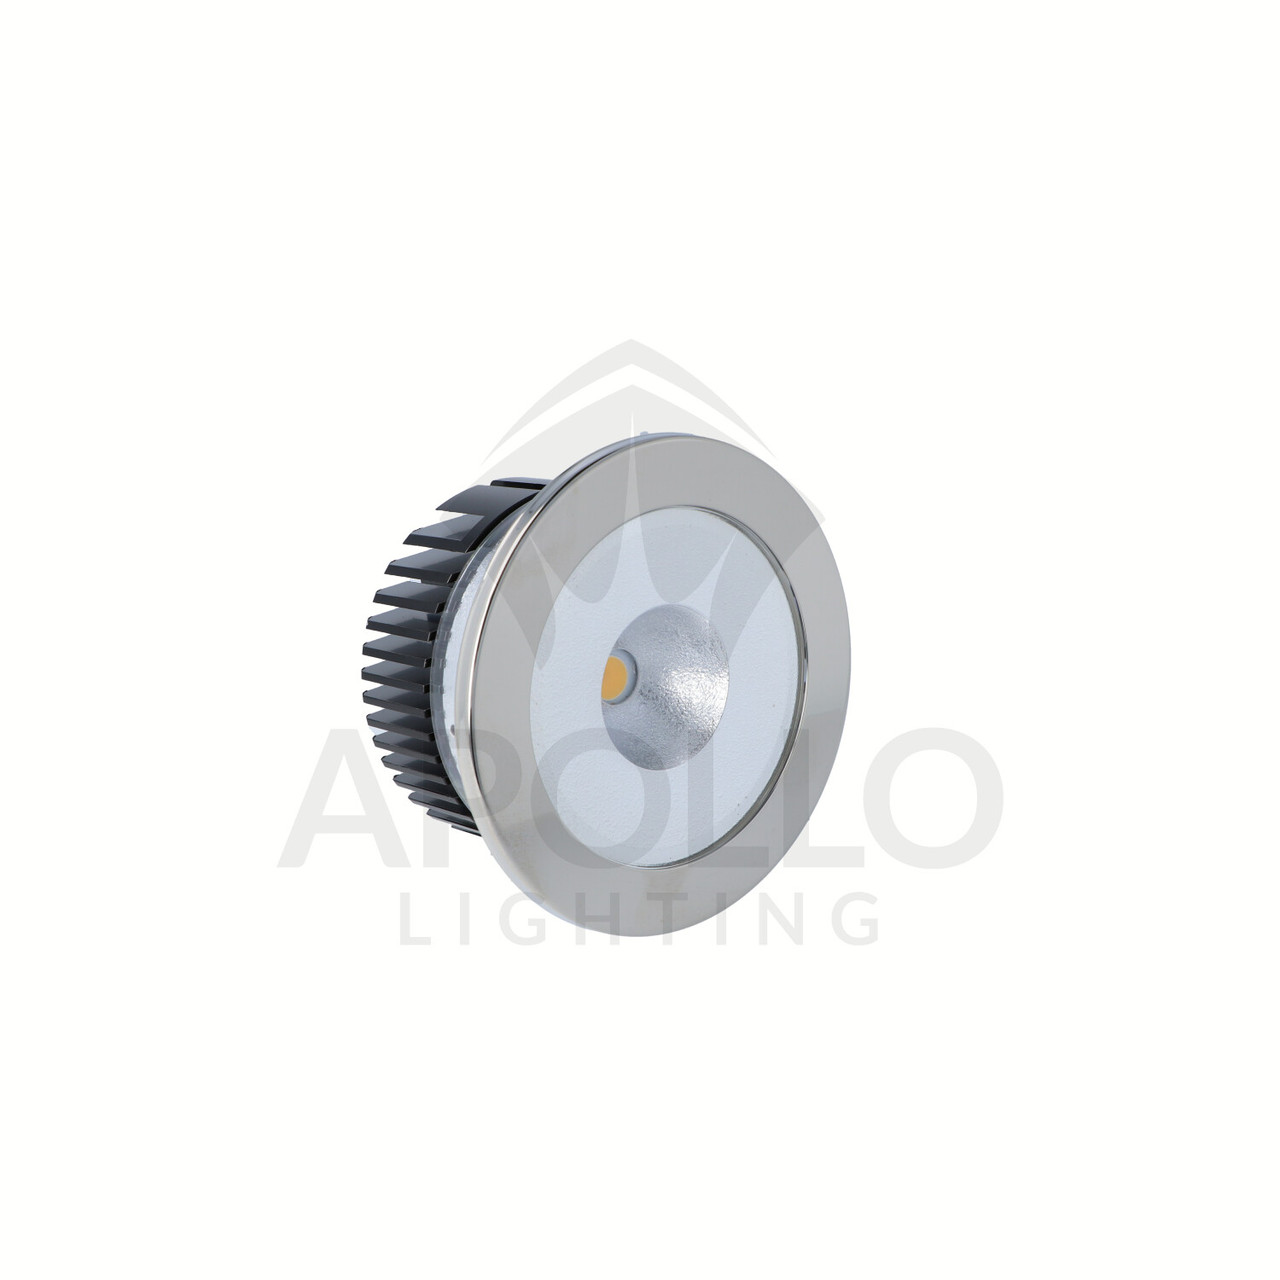 CRATER DOWNLIGHT STAINLESS STEEL (D4-CRATE-L1330-35-SS-07-000P)